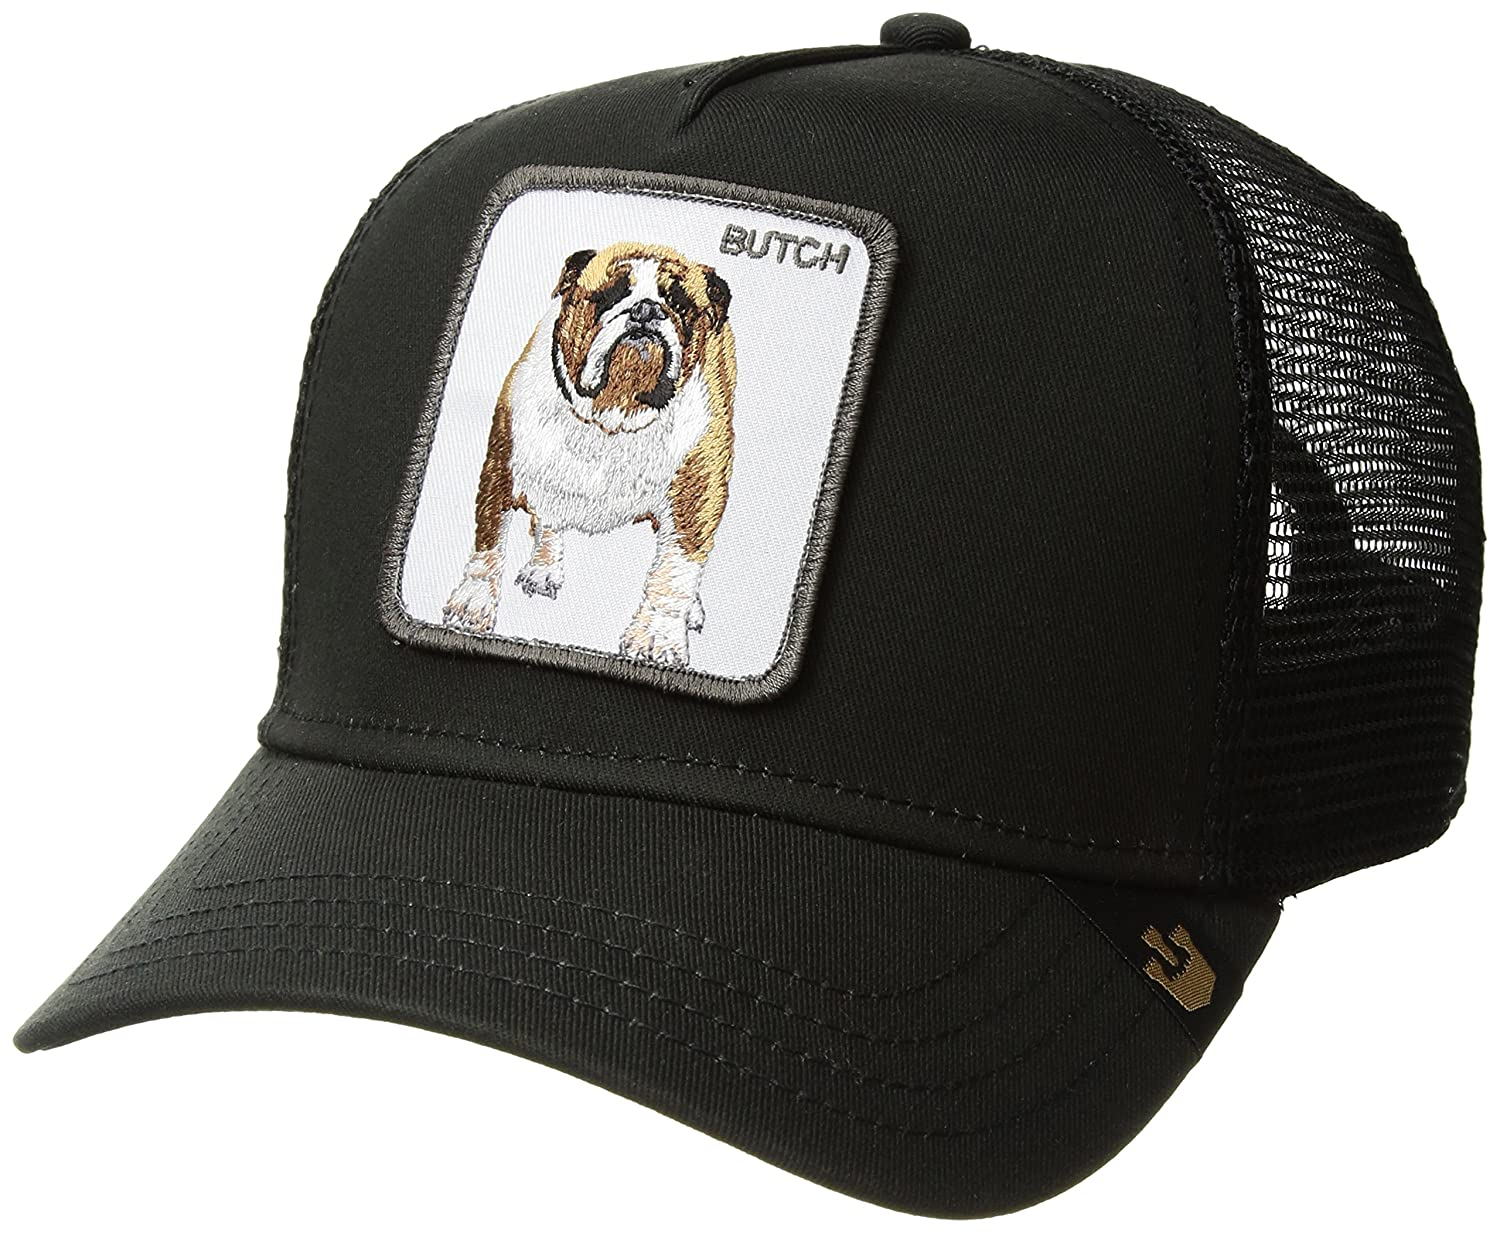 c7a96bb7 Goorin Bros. Men's Butch Animal Farm Trucker Cap, Black, One Size at Amazon  Men's Clothing store: